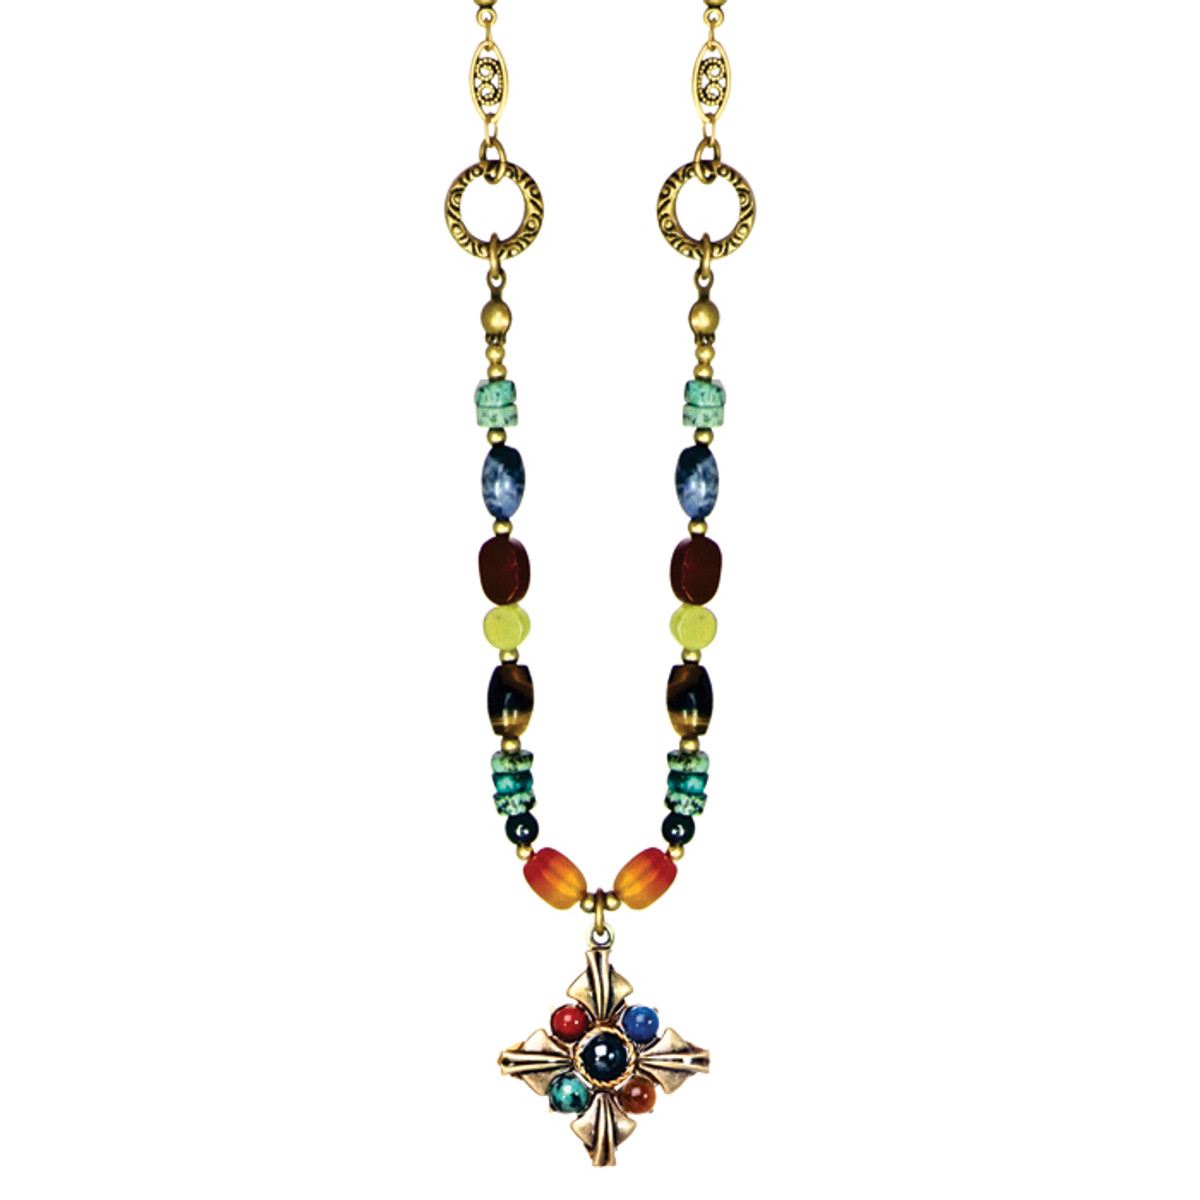 Michal Golan Necklace - Durango Small Diamond Pendant With Beaded Chain